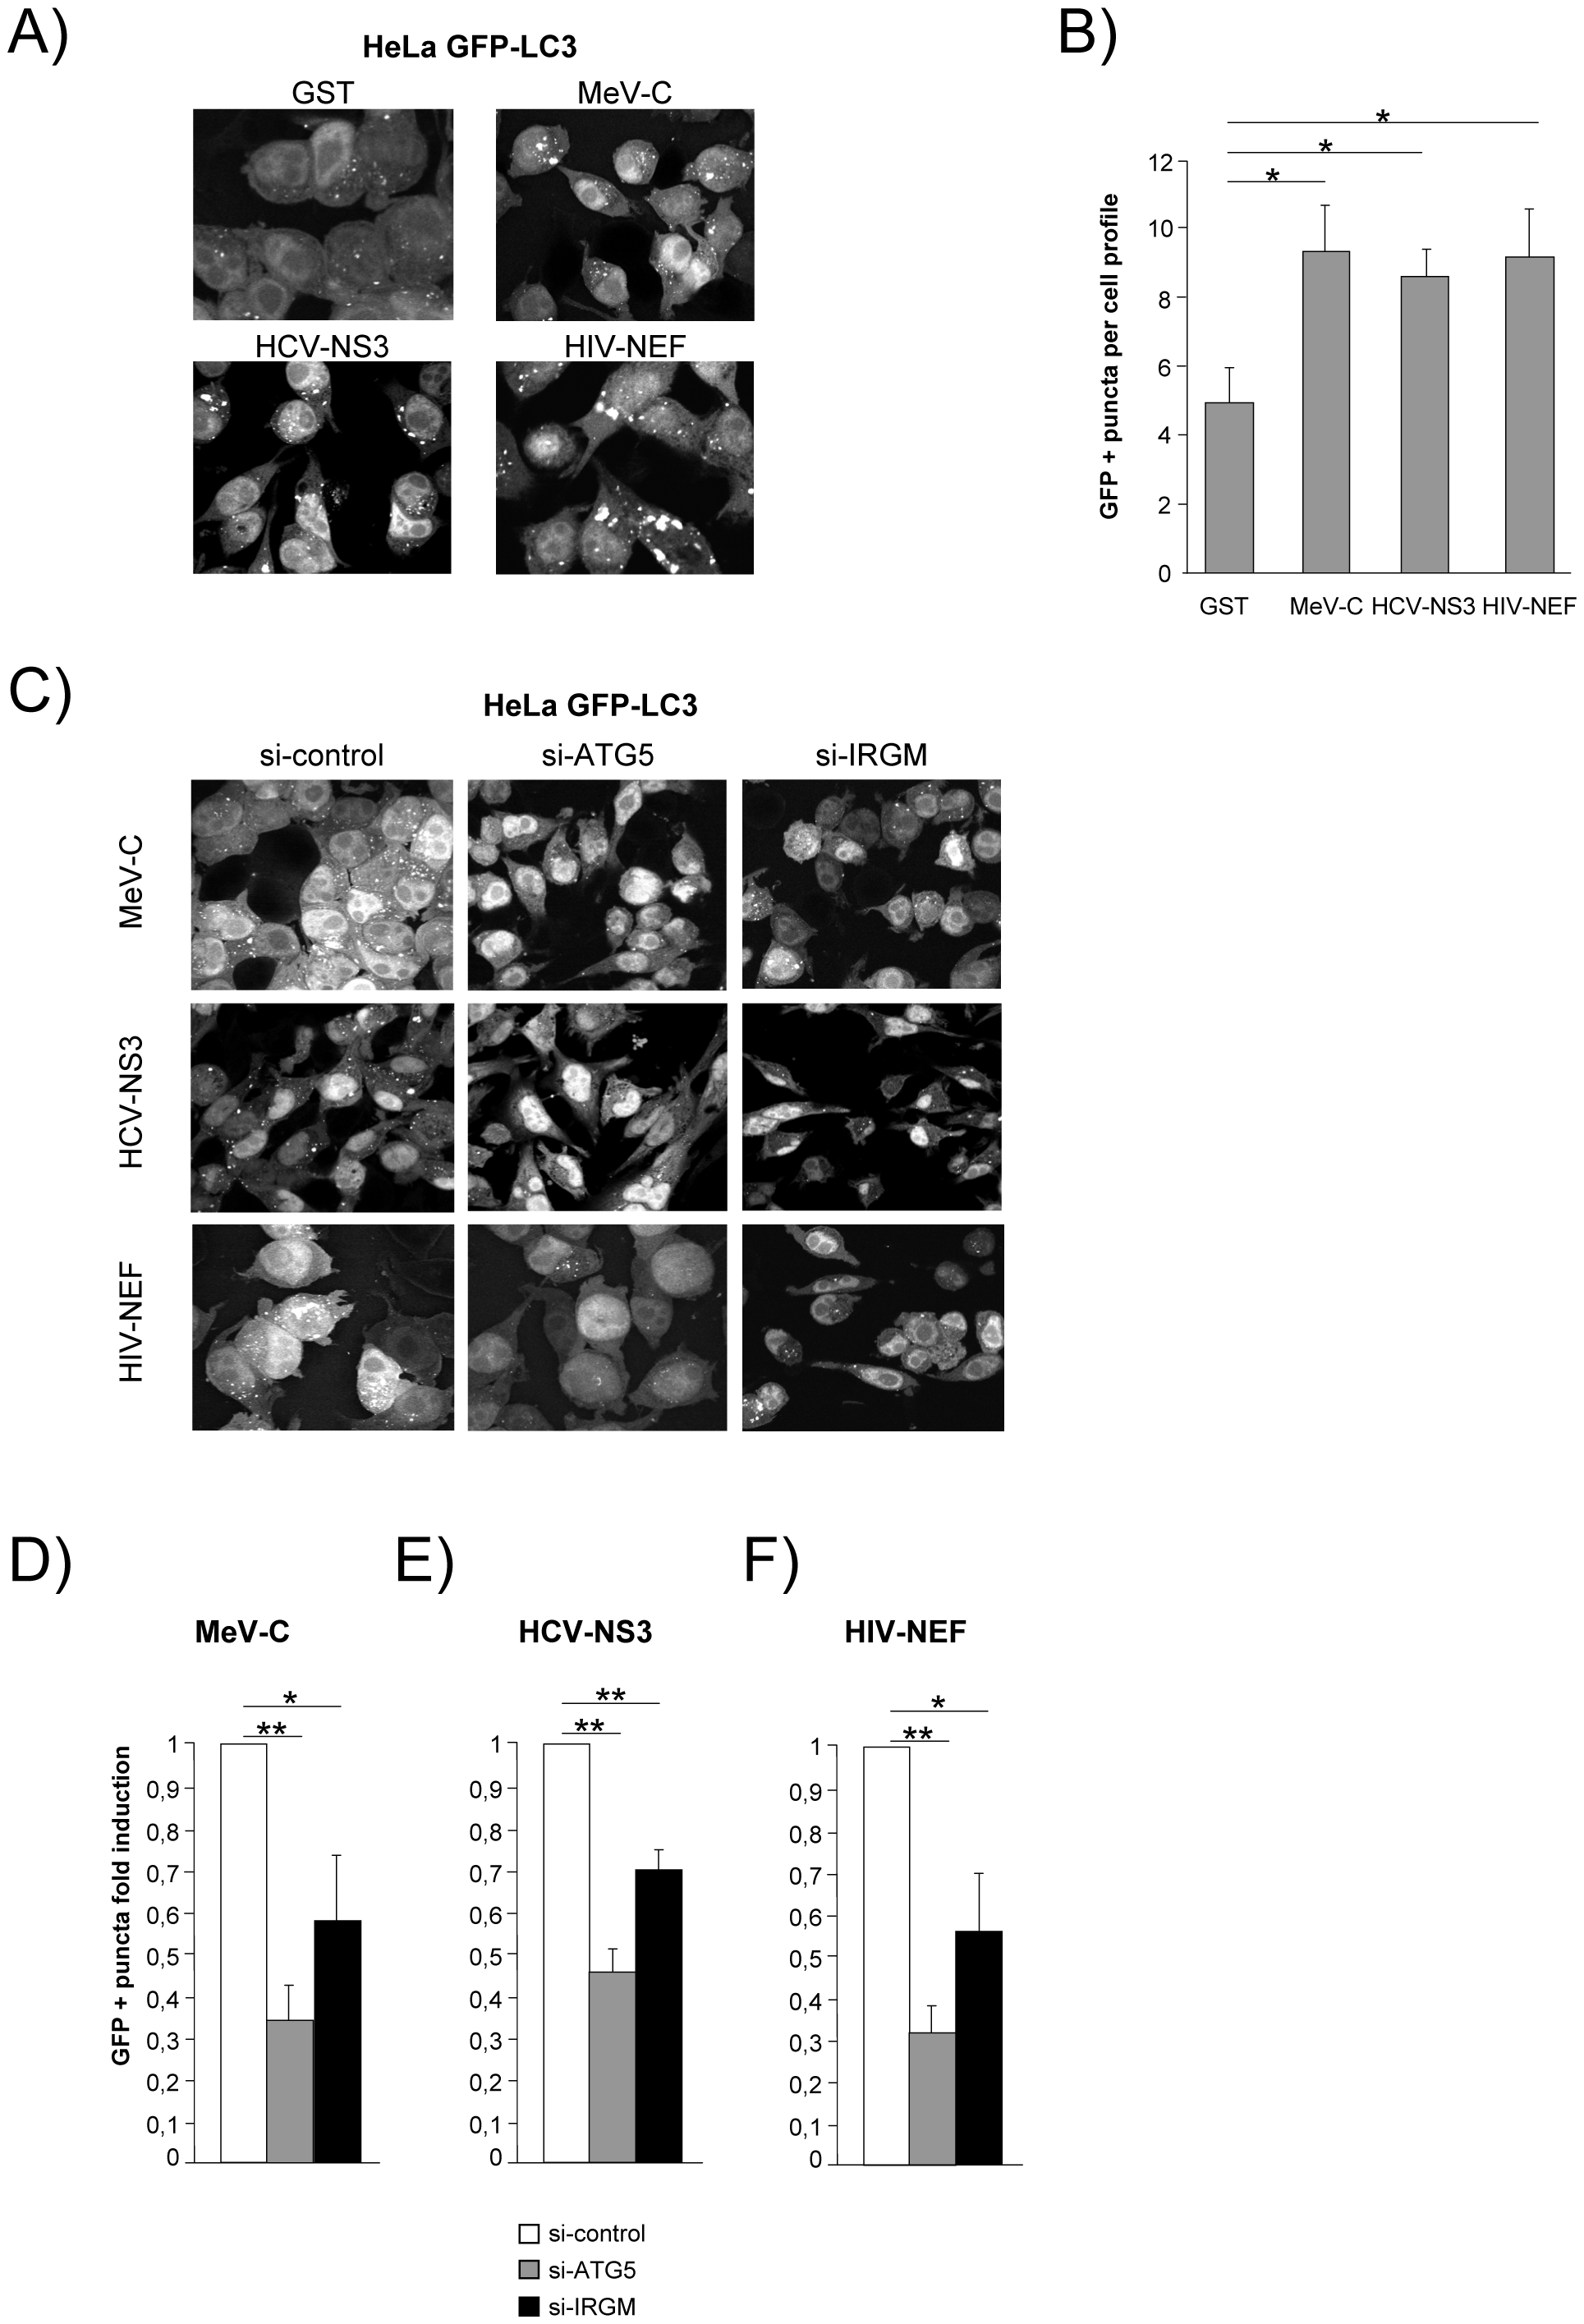 MeV-C, HCV-NS3 and HIV-NEF proteins modulate autophagy via IRGM.